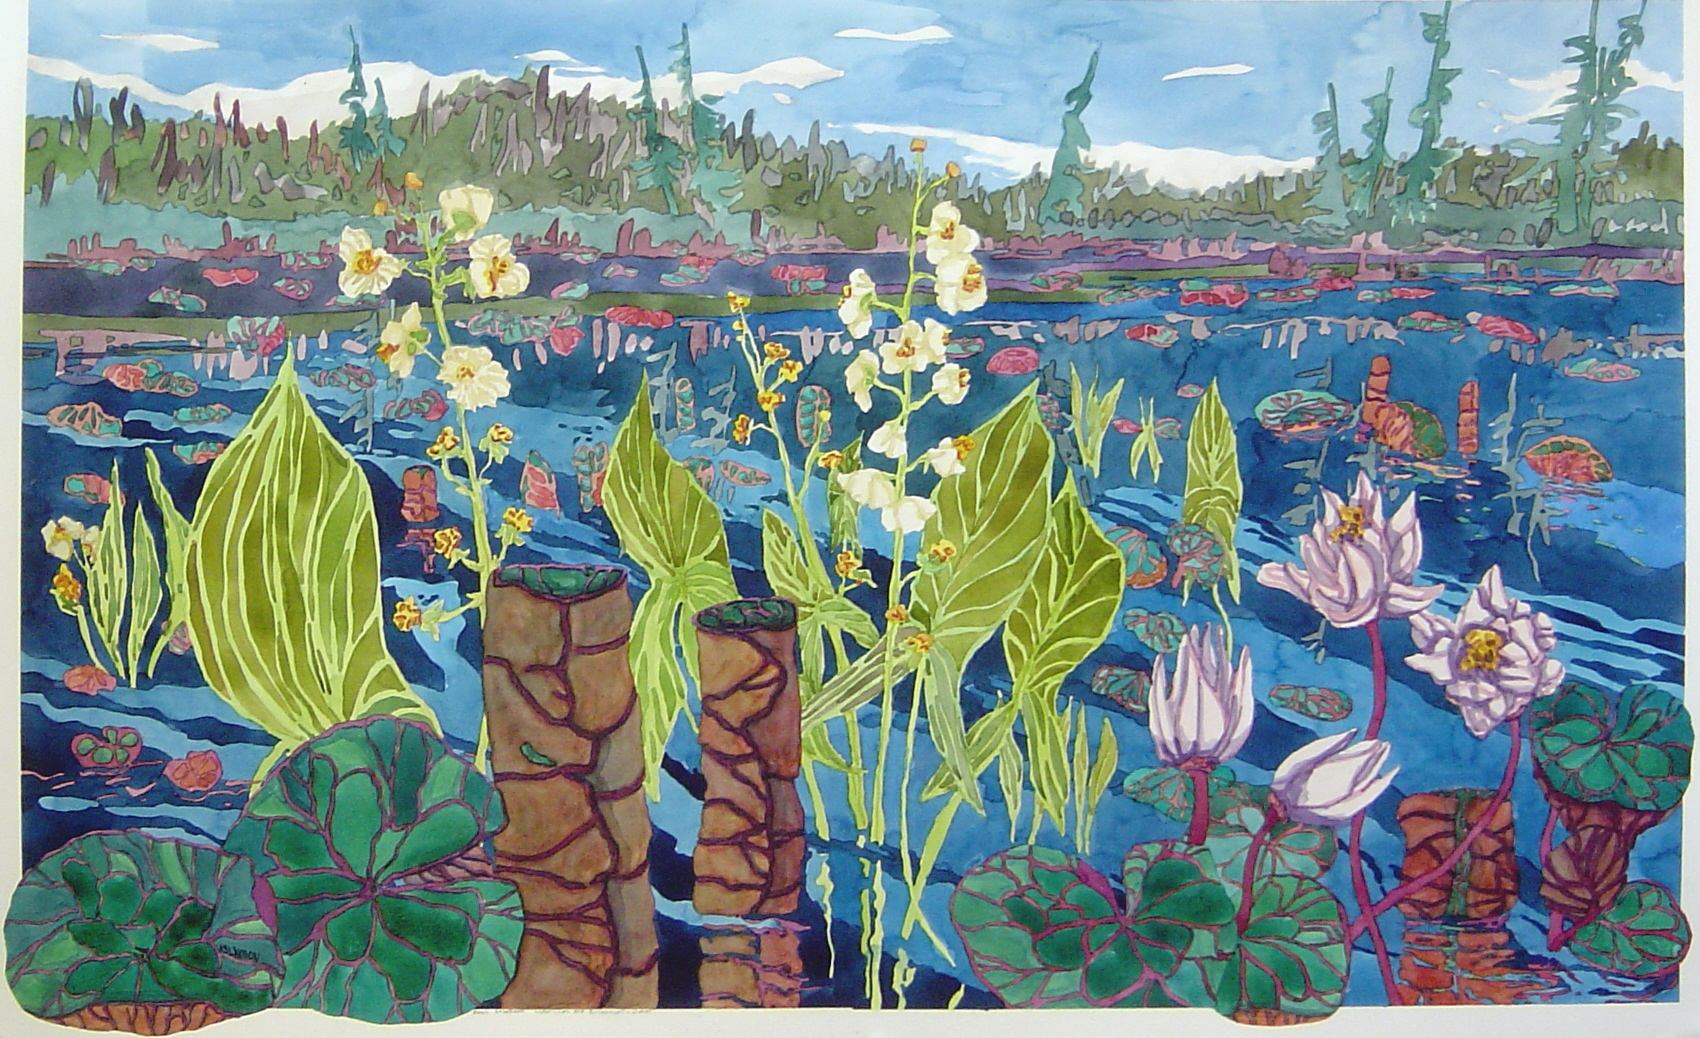 Waterlilies and Arrowroot - Water